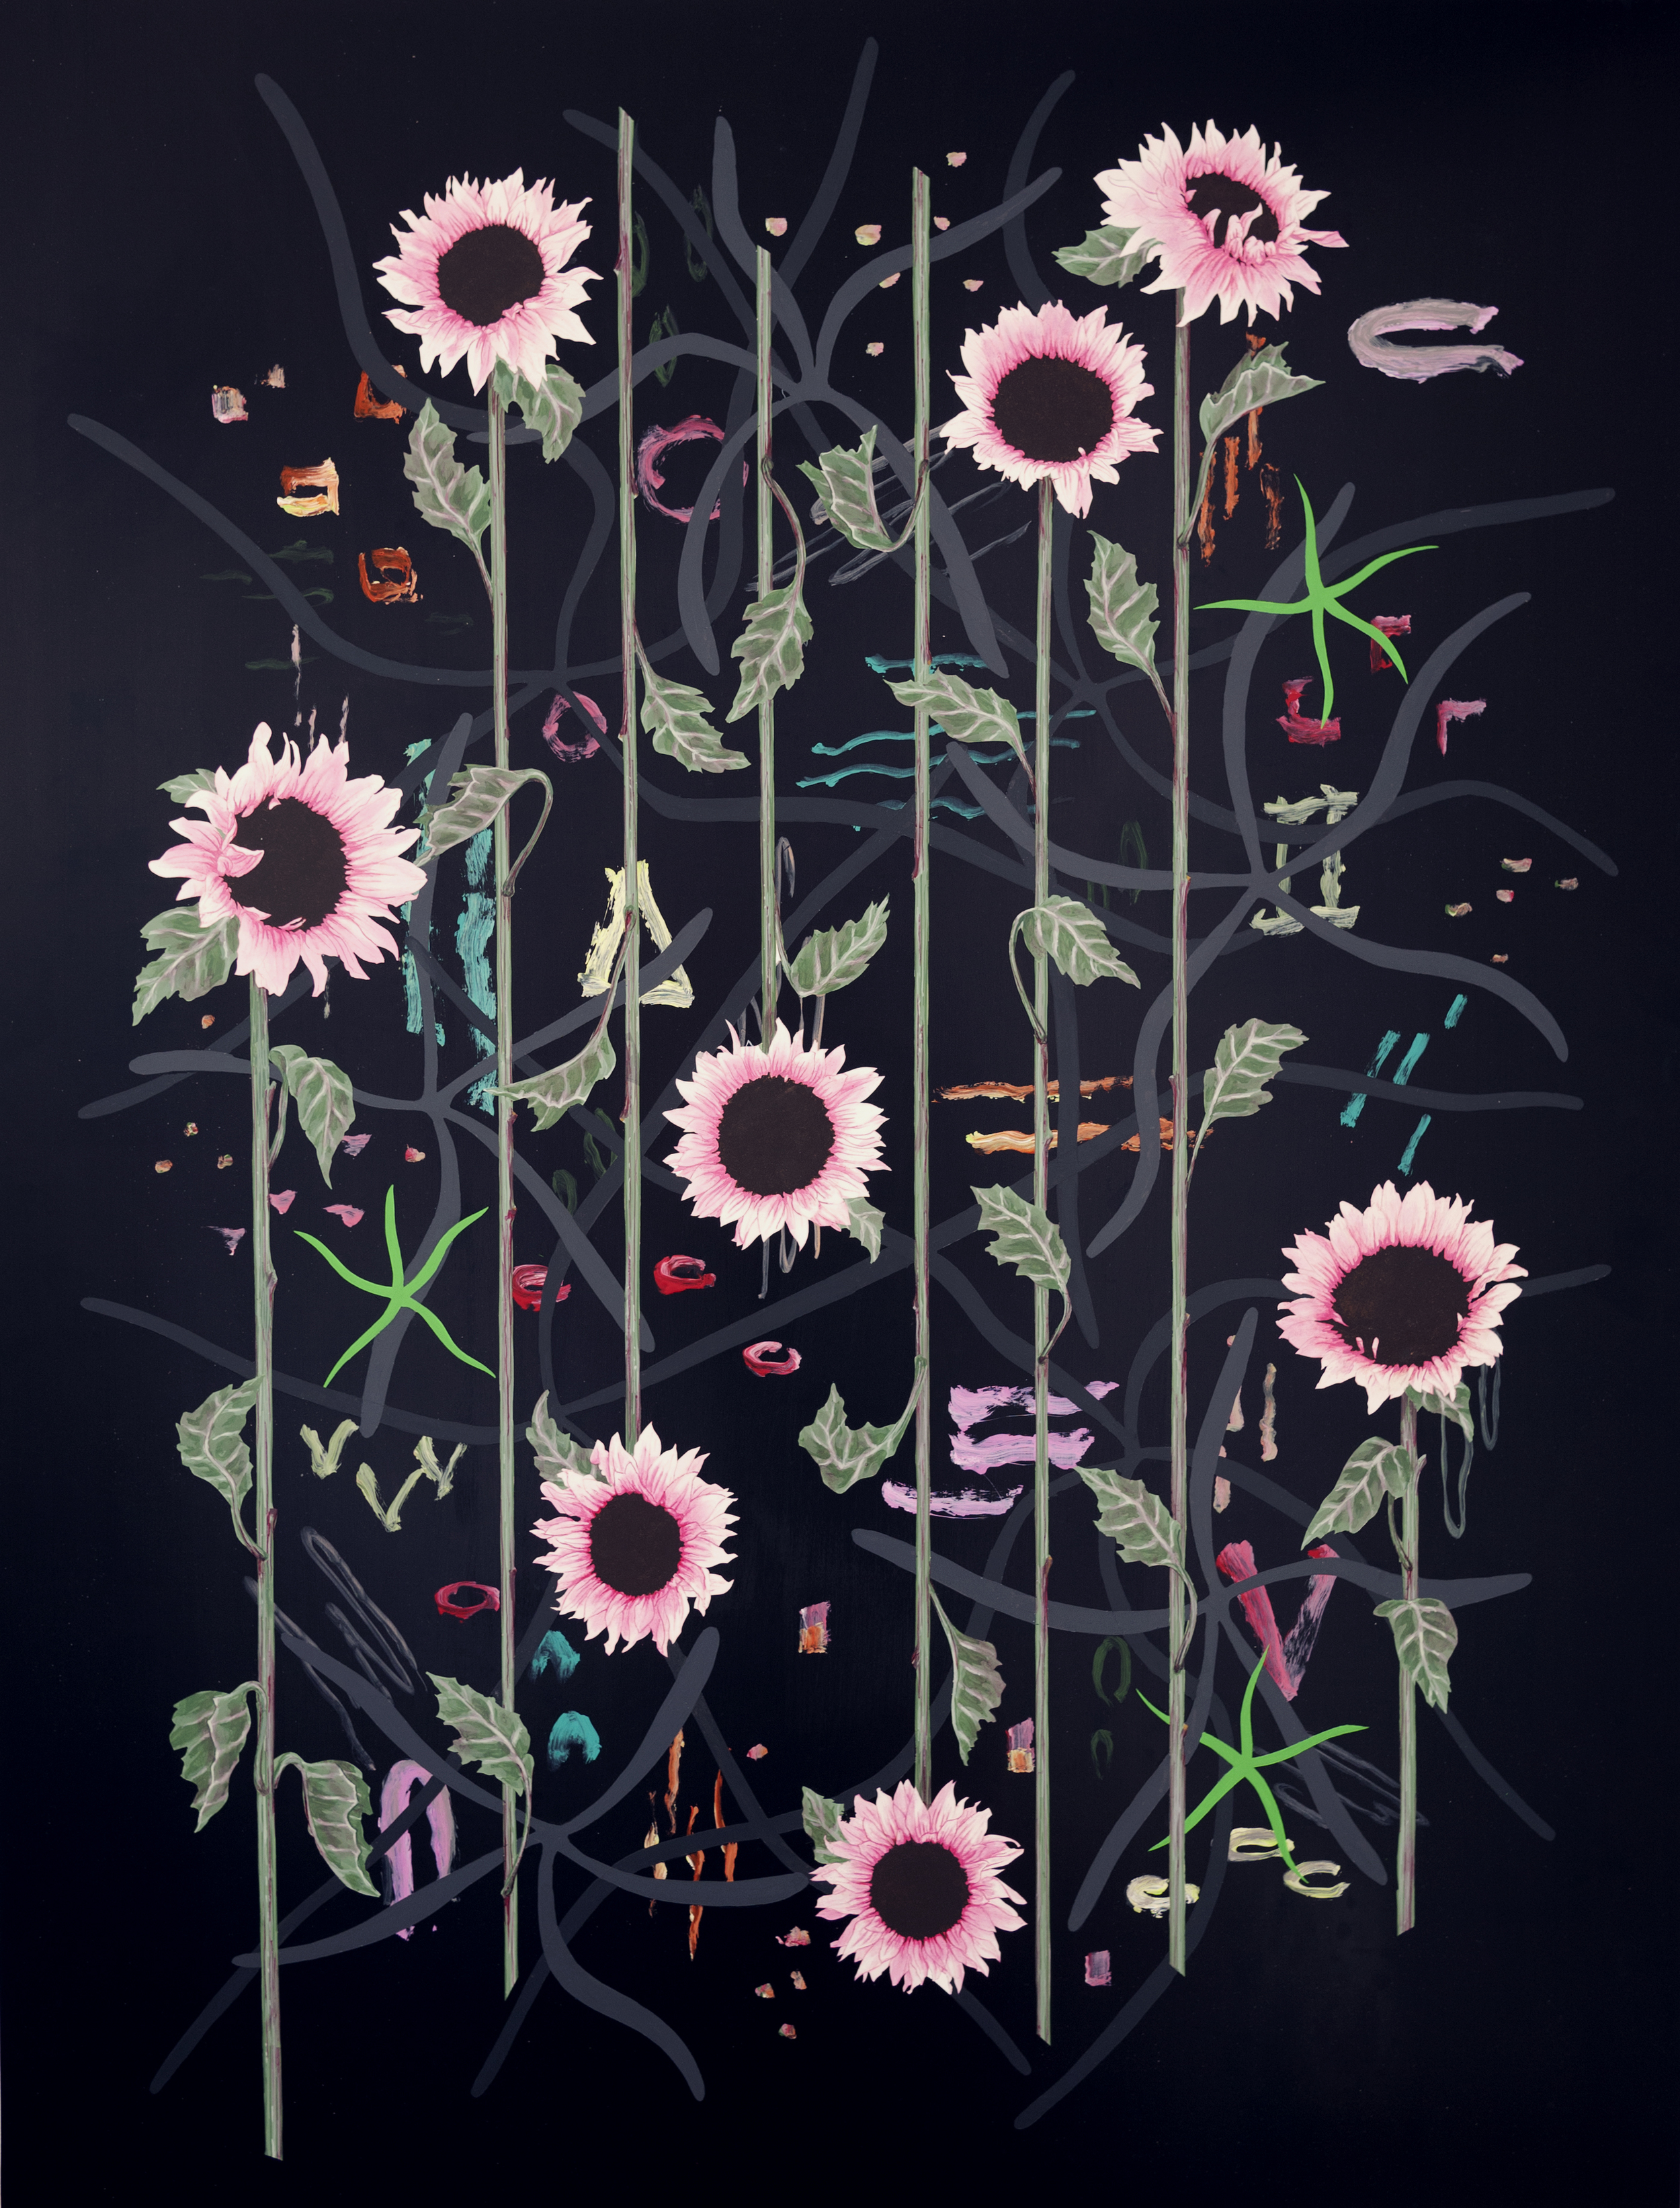 Roland Reiss    Sunflowers After Dark  2013, oil and acrylic on canvas